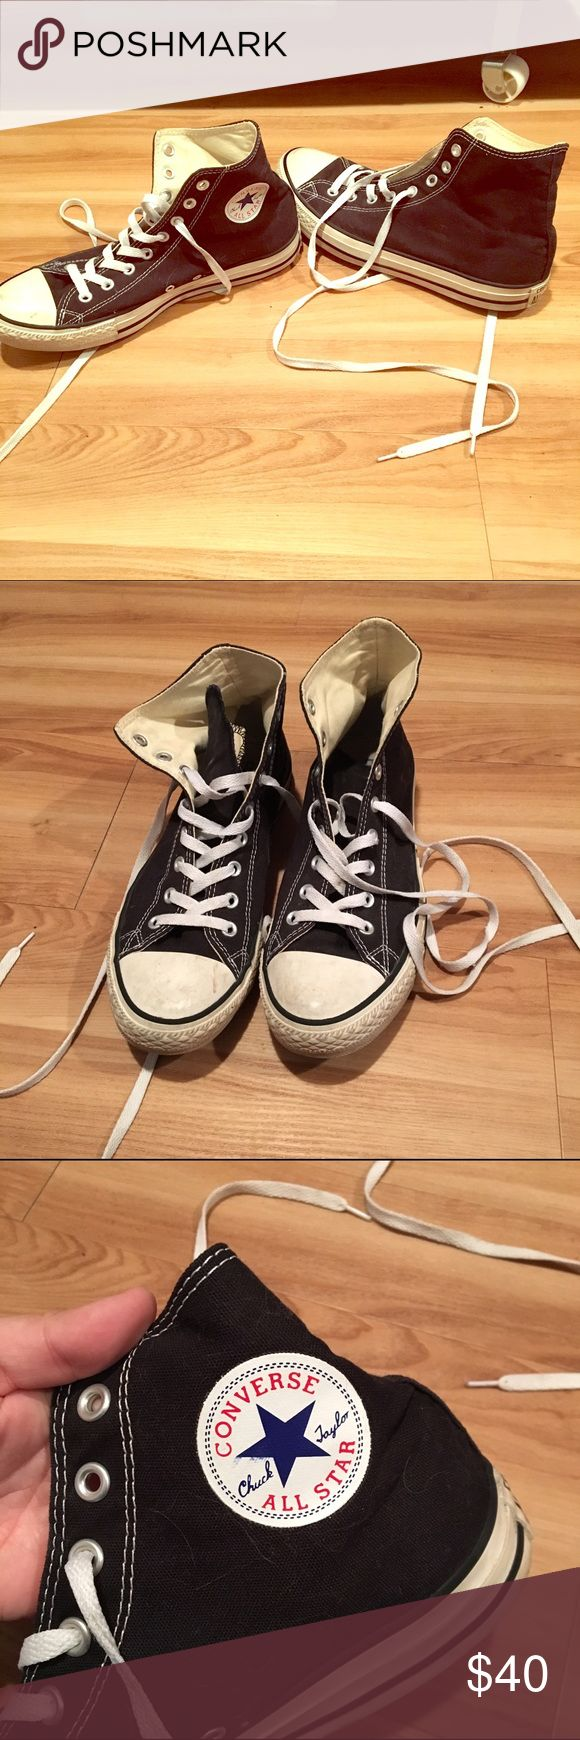 Men's Black High Top Converse Men's Black High Top Converse, barely worn, in good condition, a few scuffs on toe just from normal use. 👍 Converse Shoes Sneakers